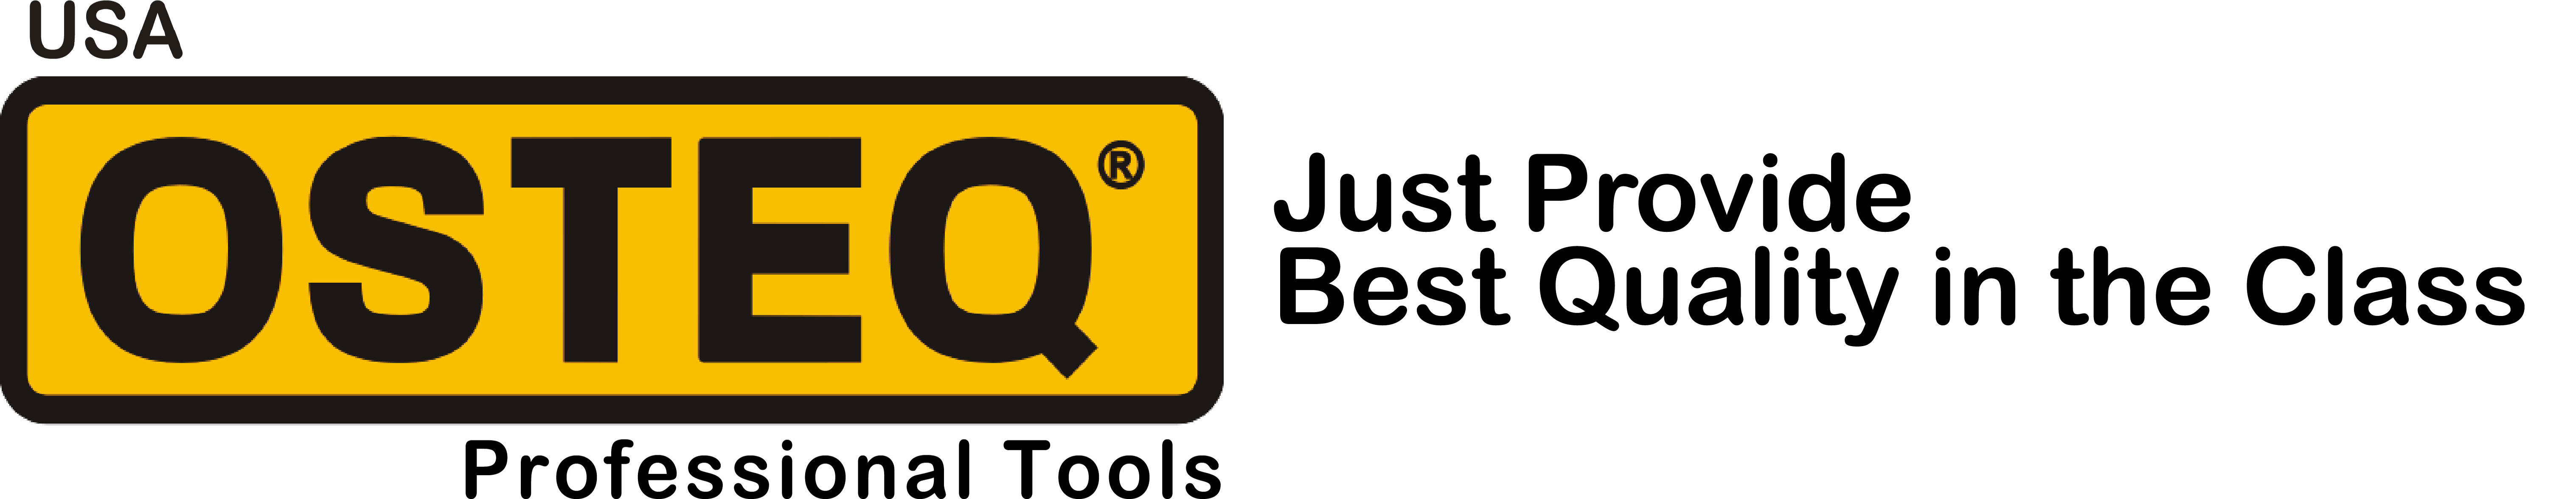 Osteq-Tools & Equipment